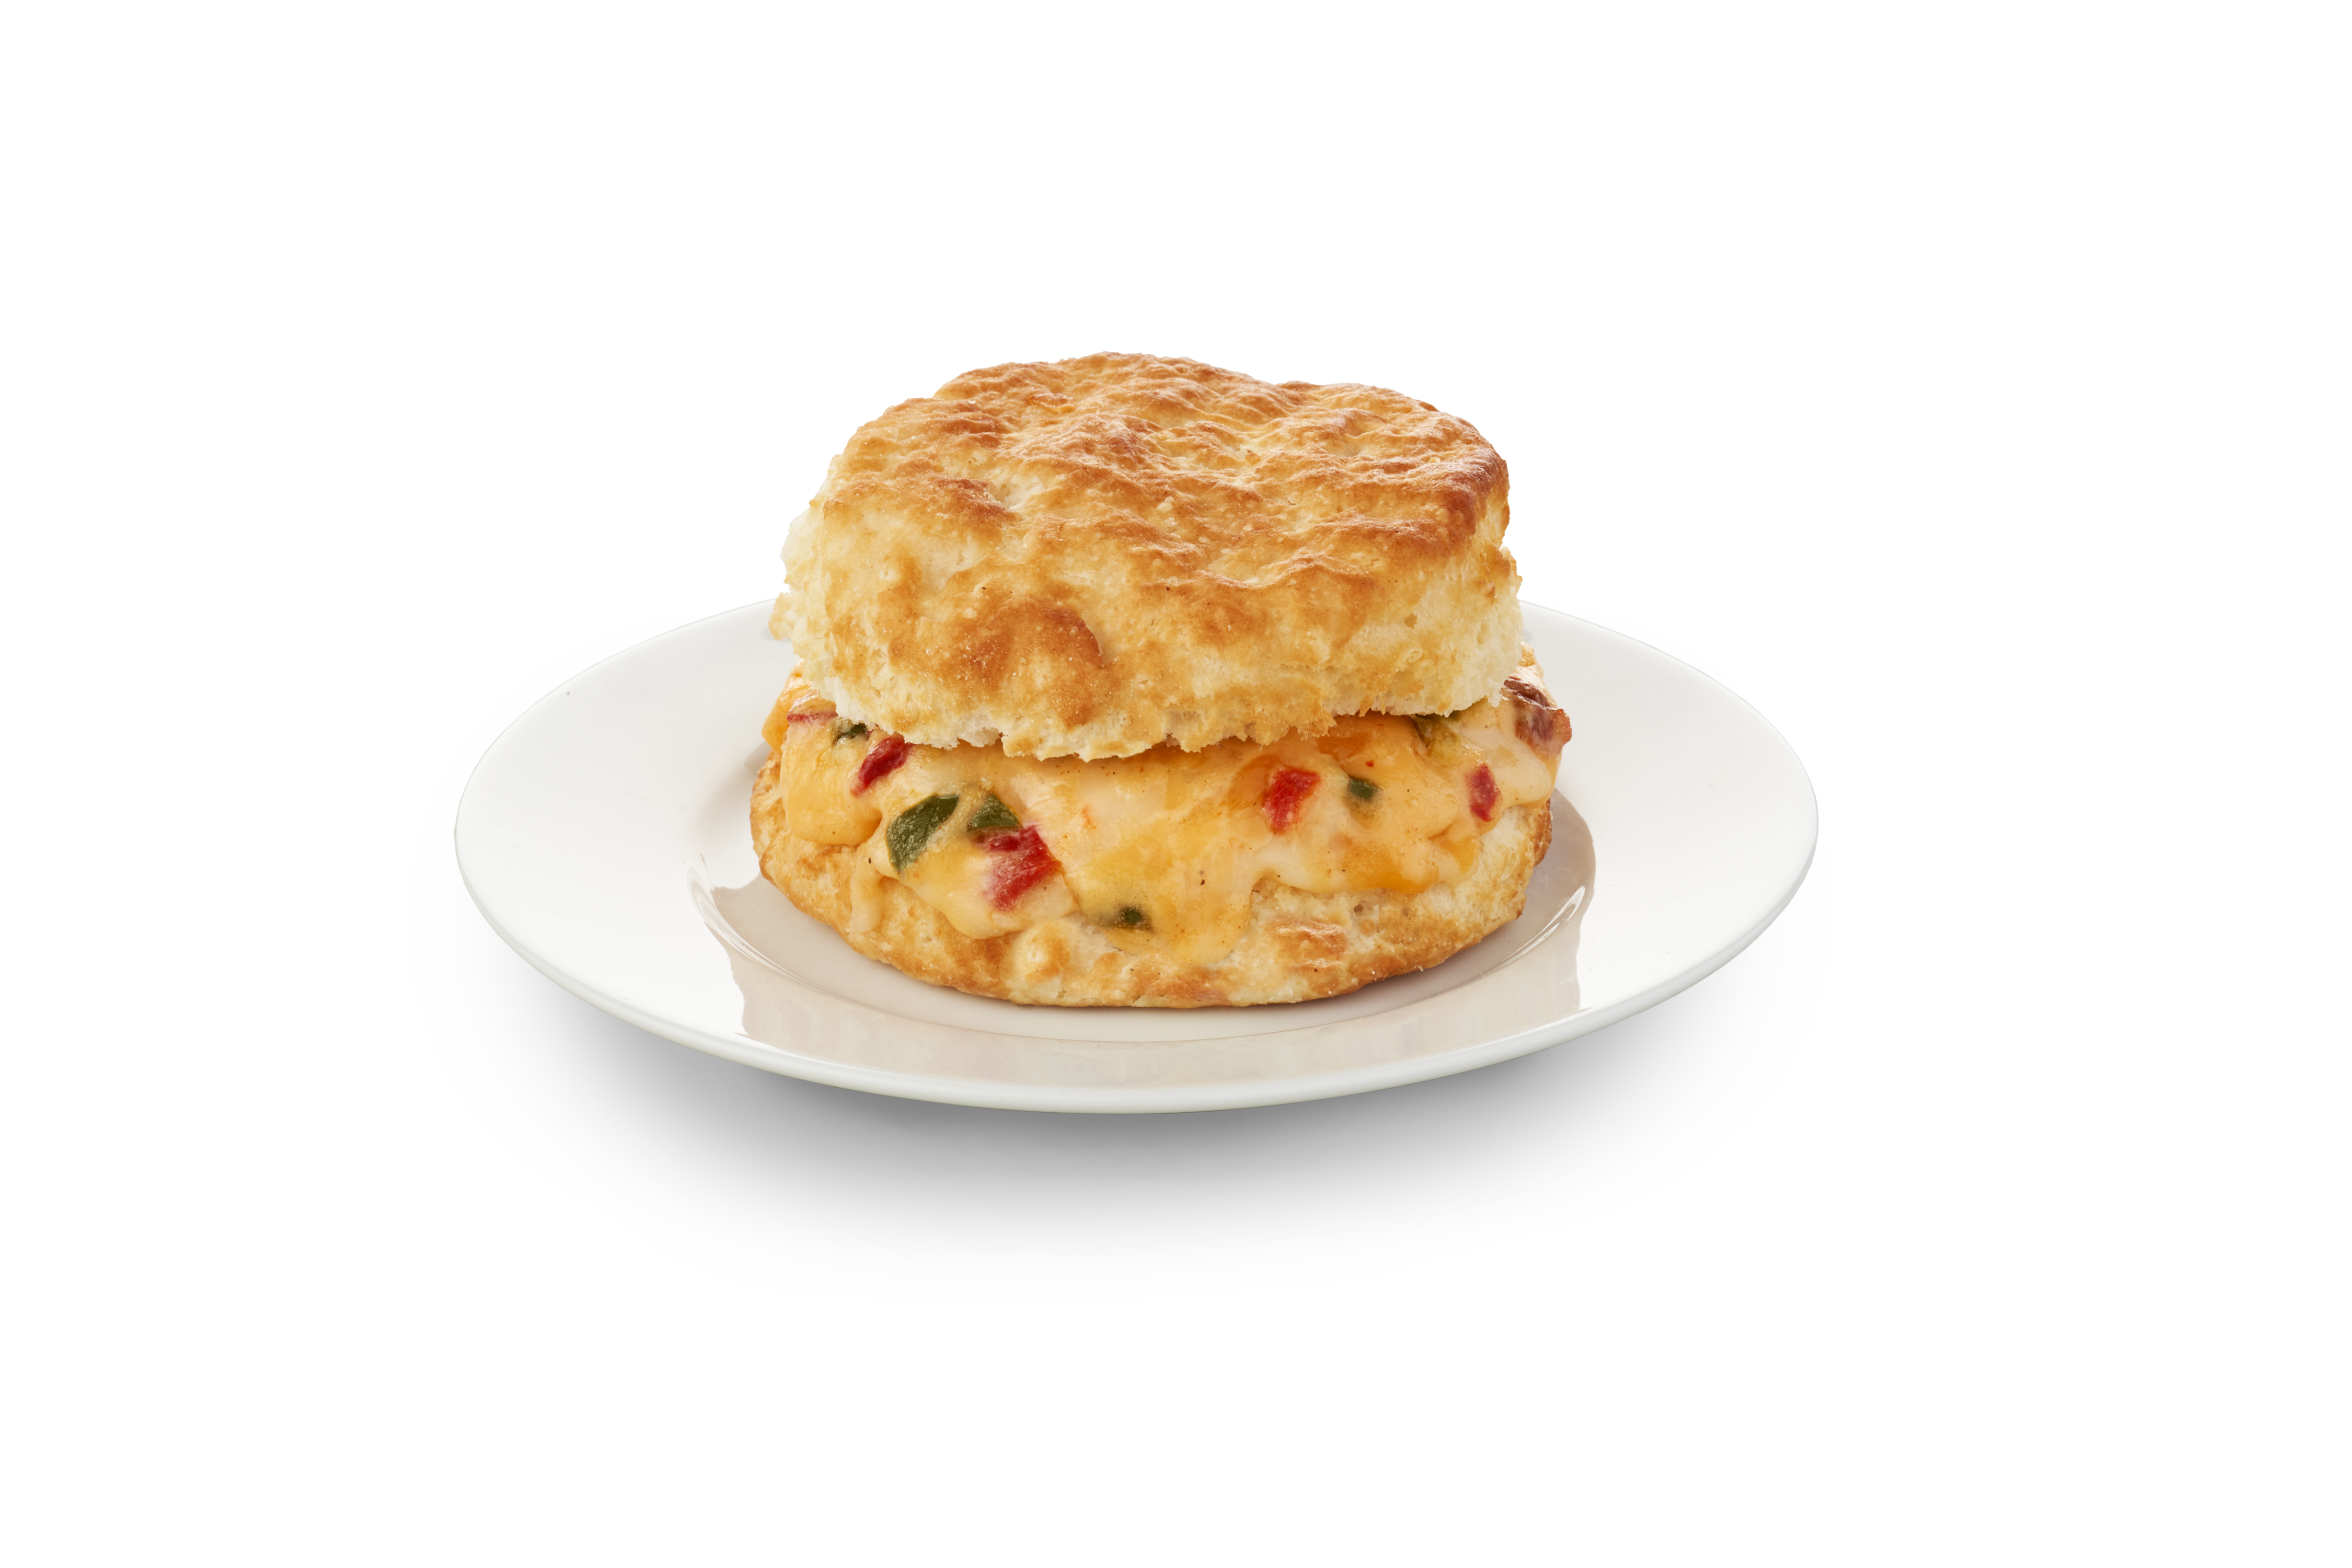 Bojangles' Finally Adds Pimento Cheese Biscuits to Its Menu